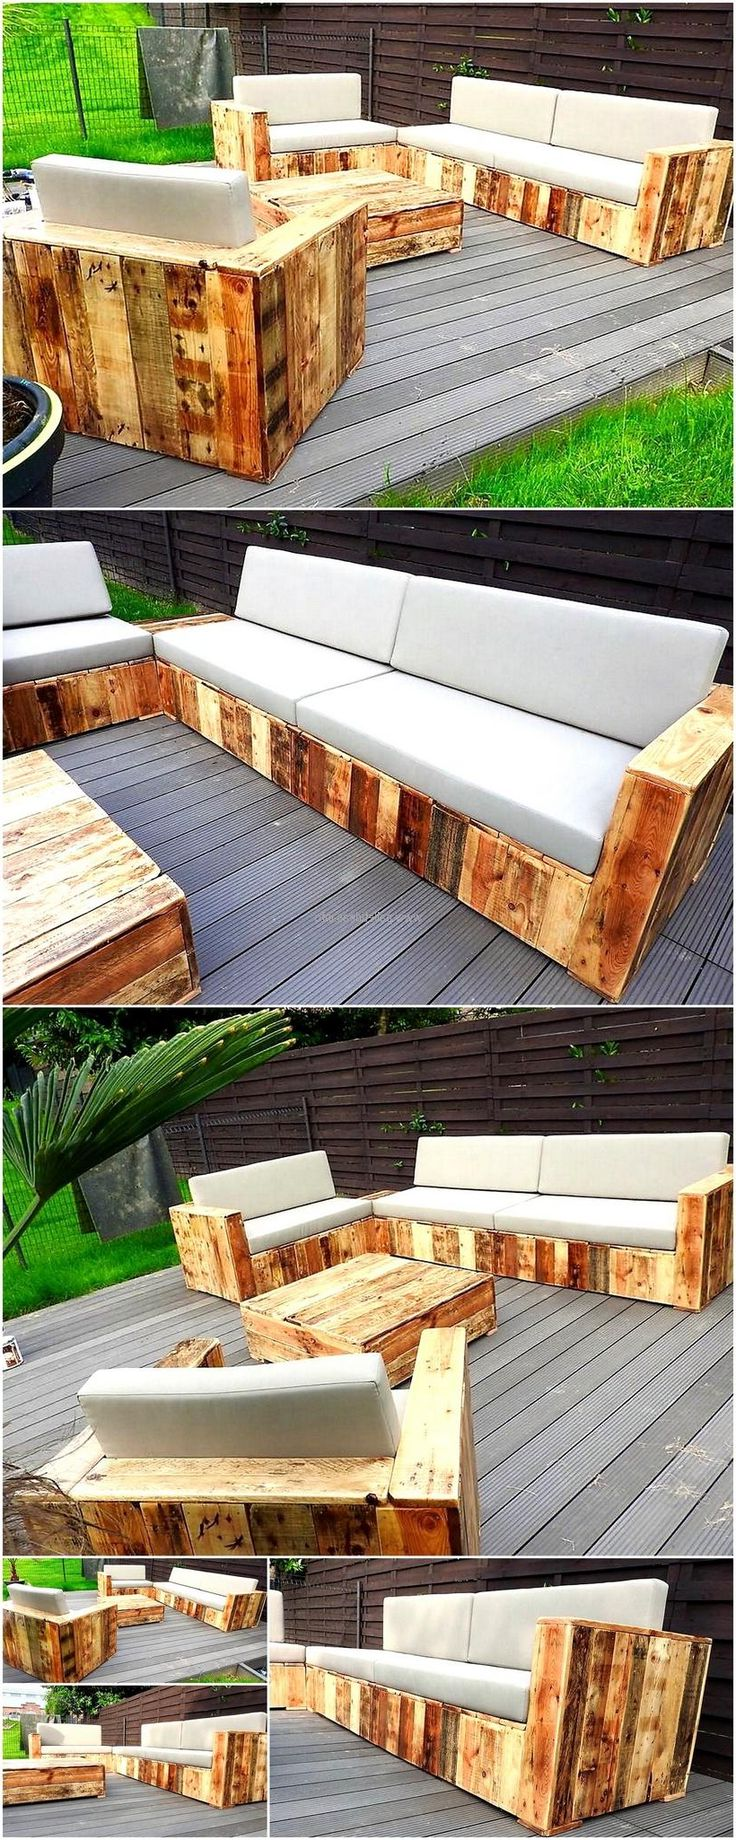 How To Waterproof Wood Furniture For Outdoors Patio